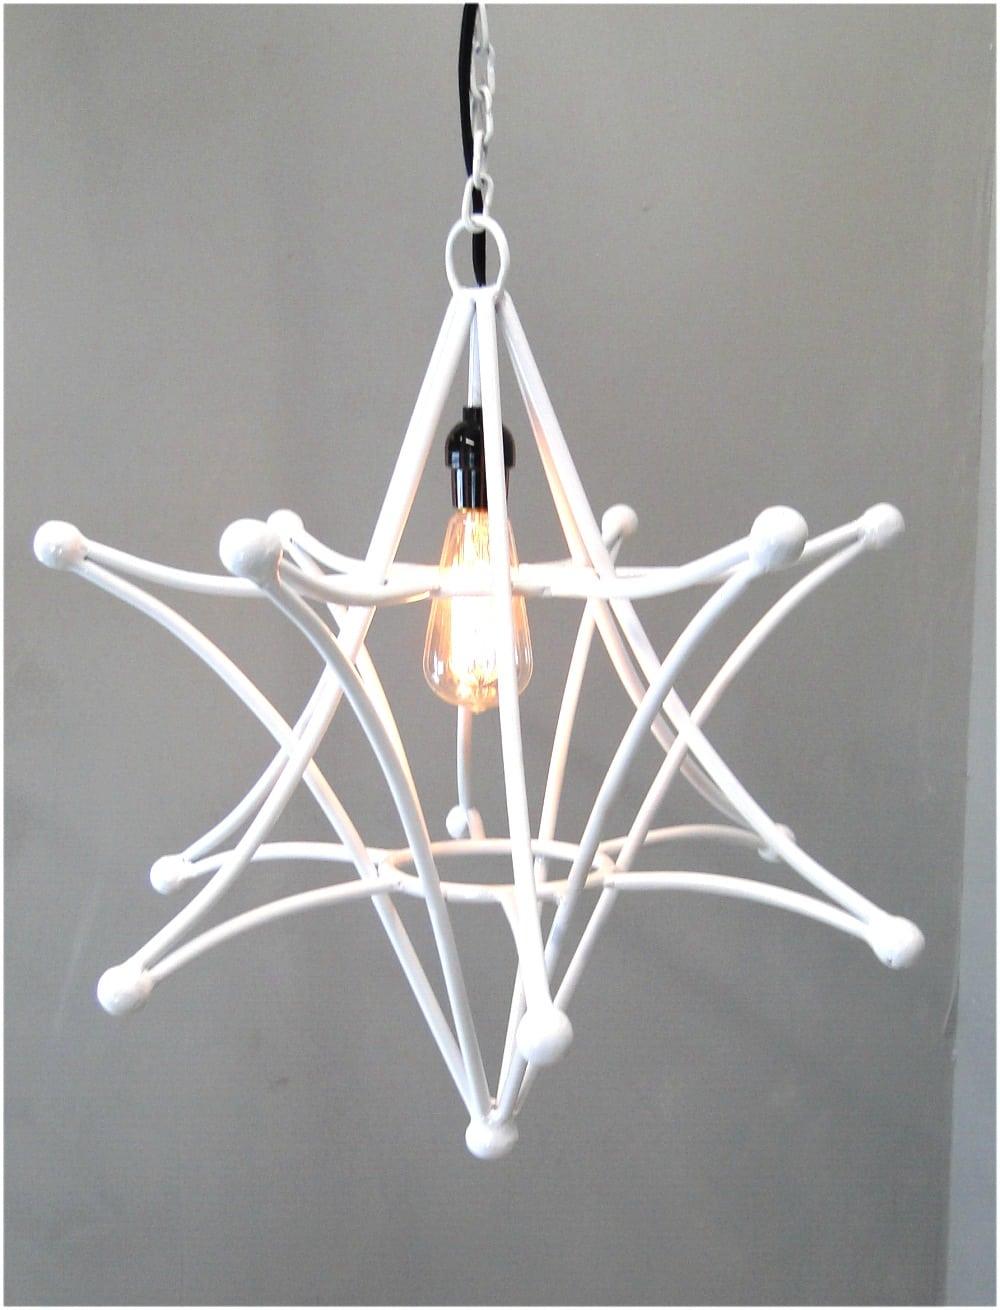 Shooting Star Pendant White Light Fixture With Chain And